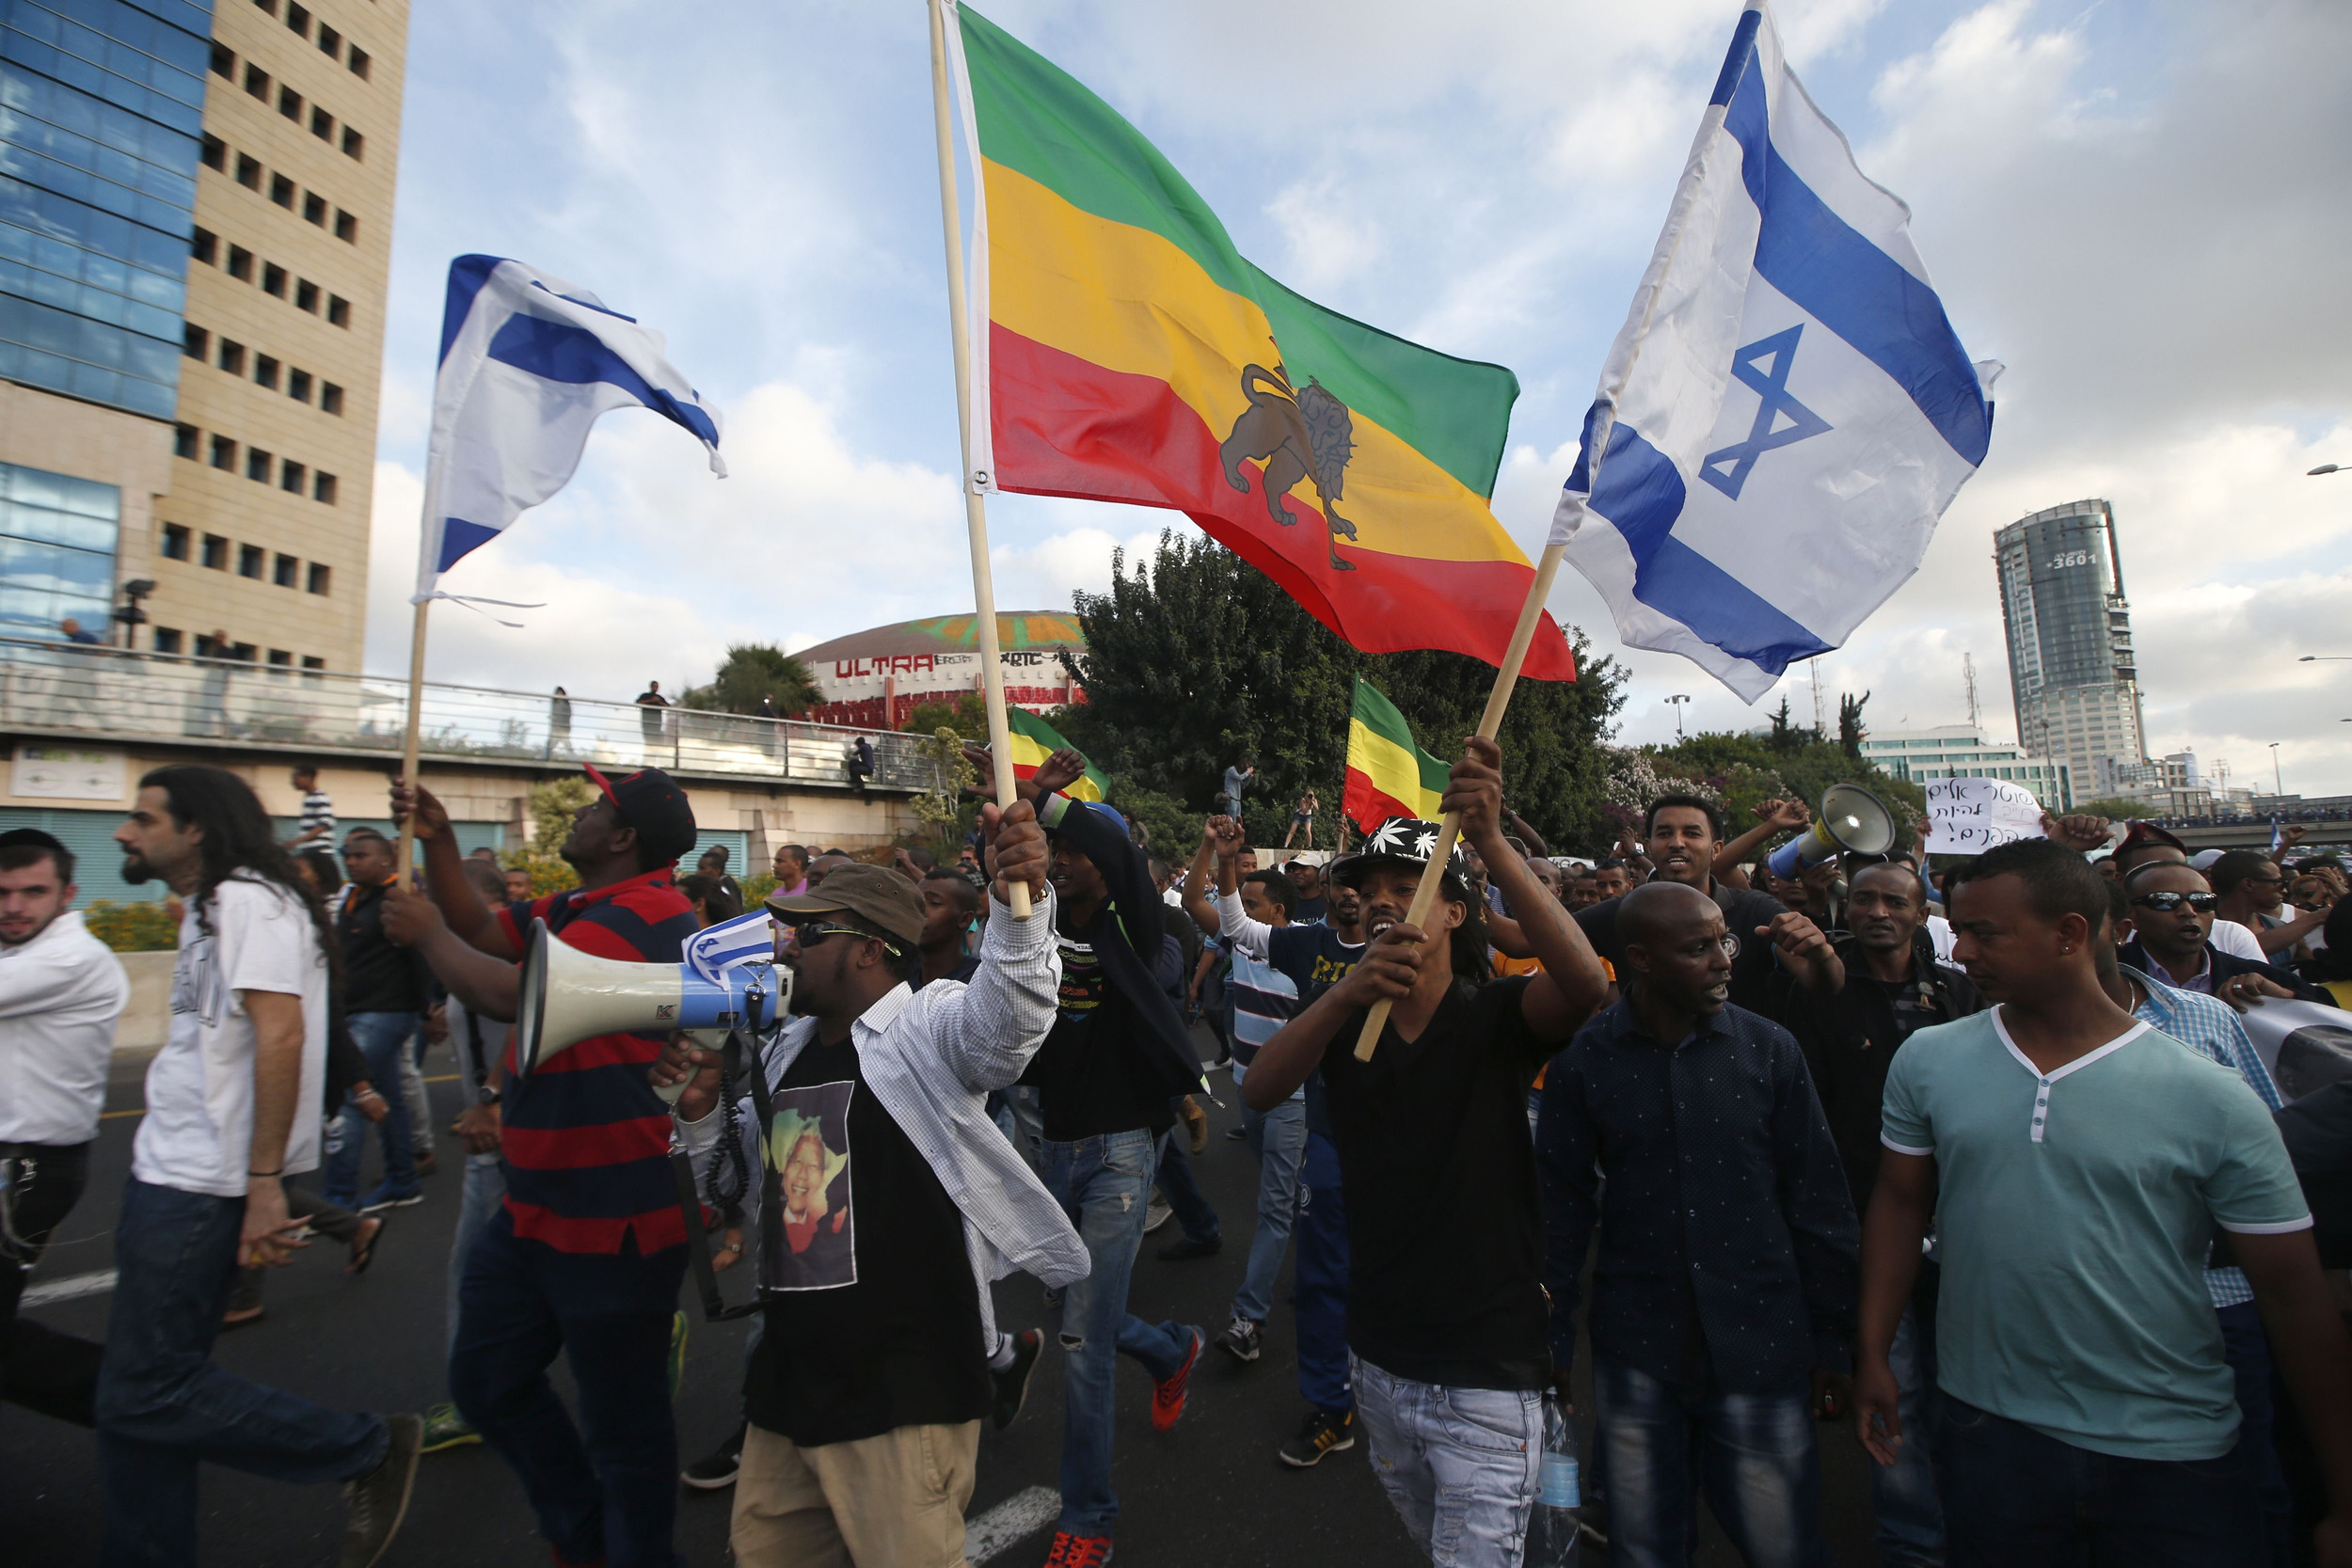 Image: ISRAEL-ETHIOPIA-DEMONSTRATION